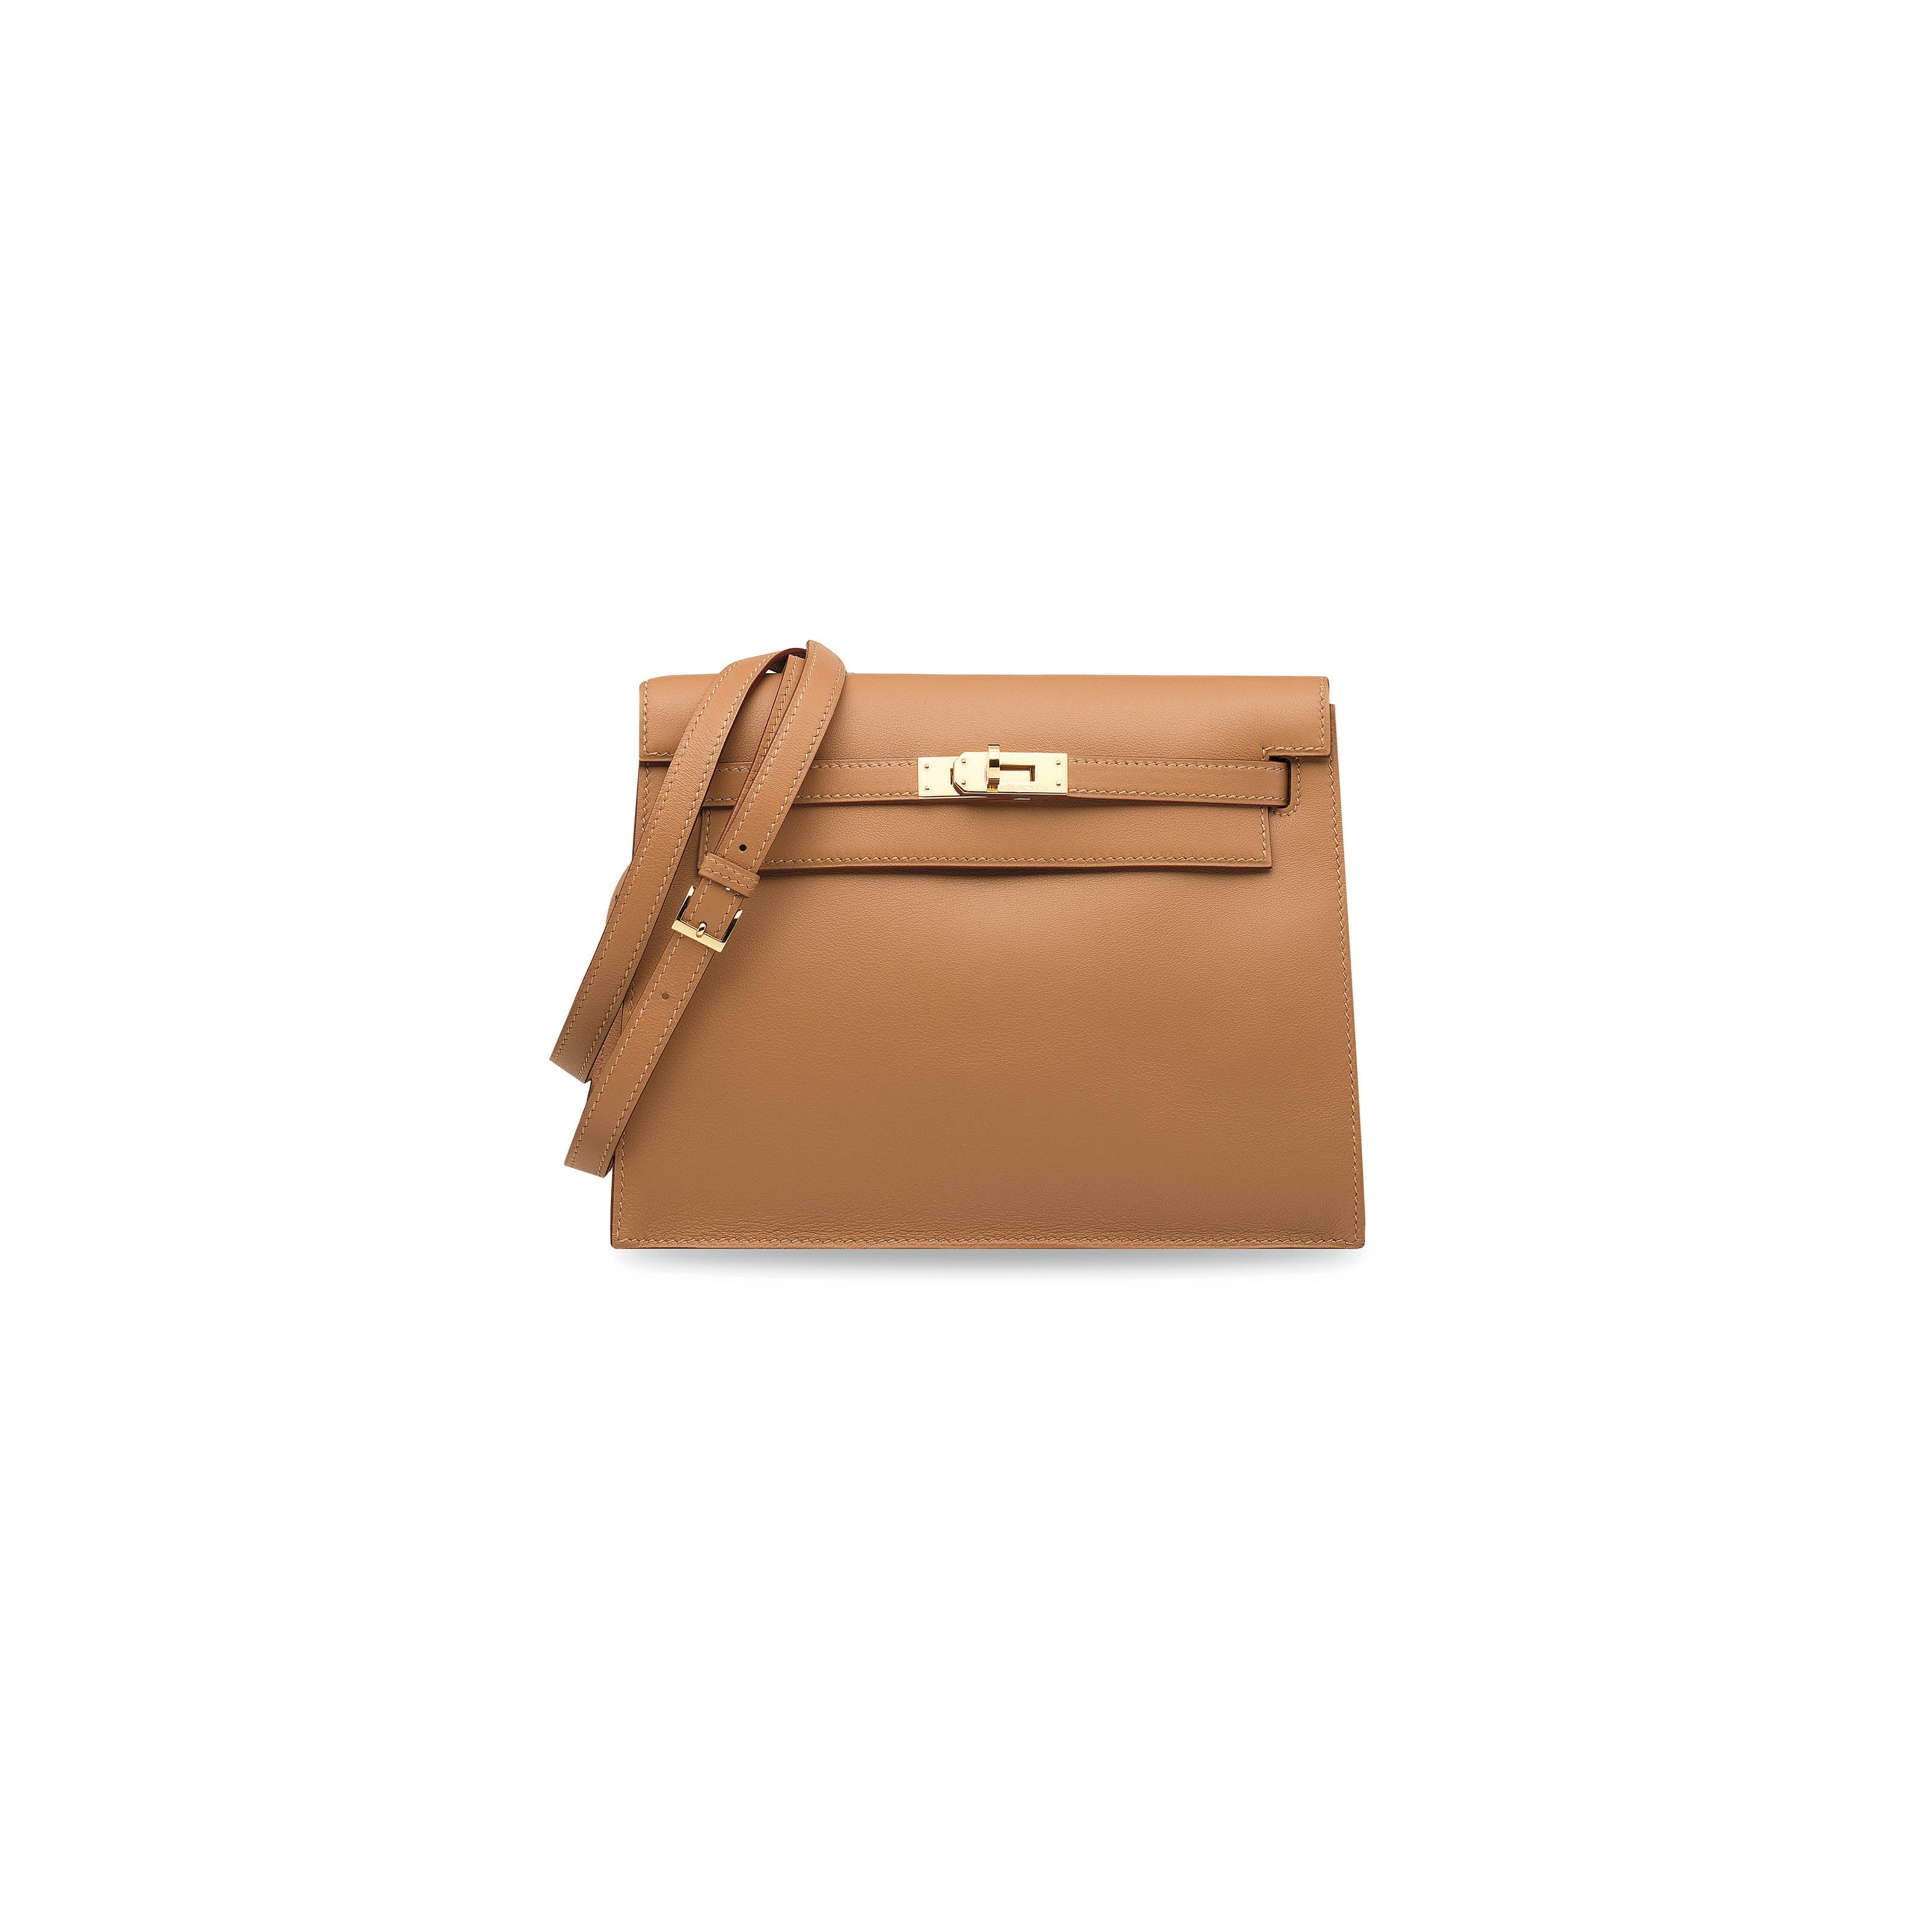 e97311259739 ... aliexpress a tabac camel swift leather kelly danse with gold hardware  hermÈs 705c2 d4026 ...